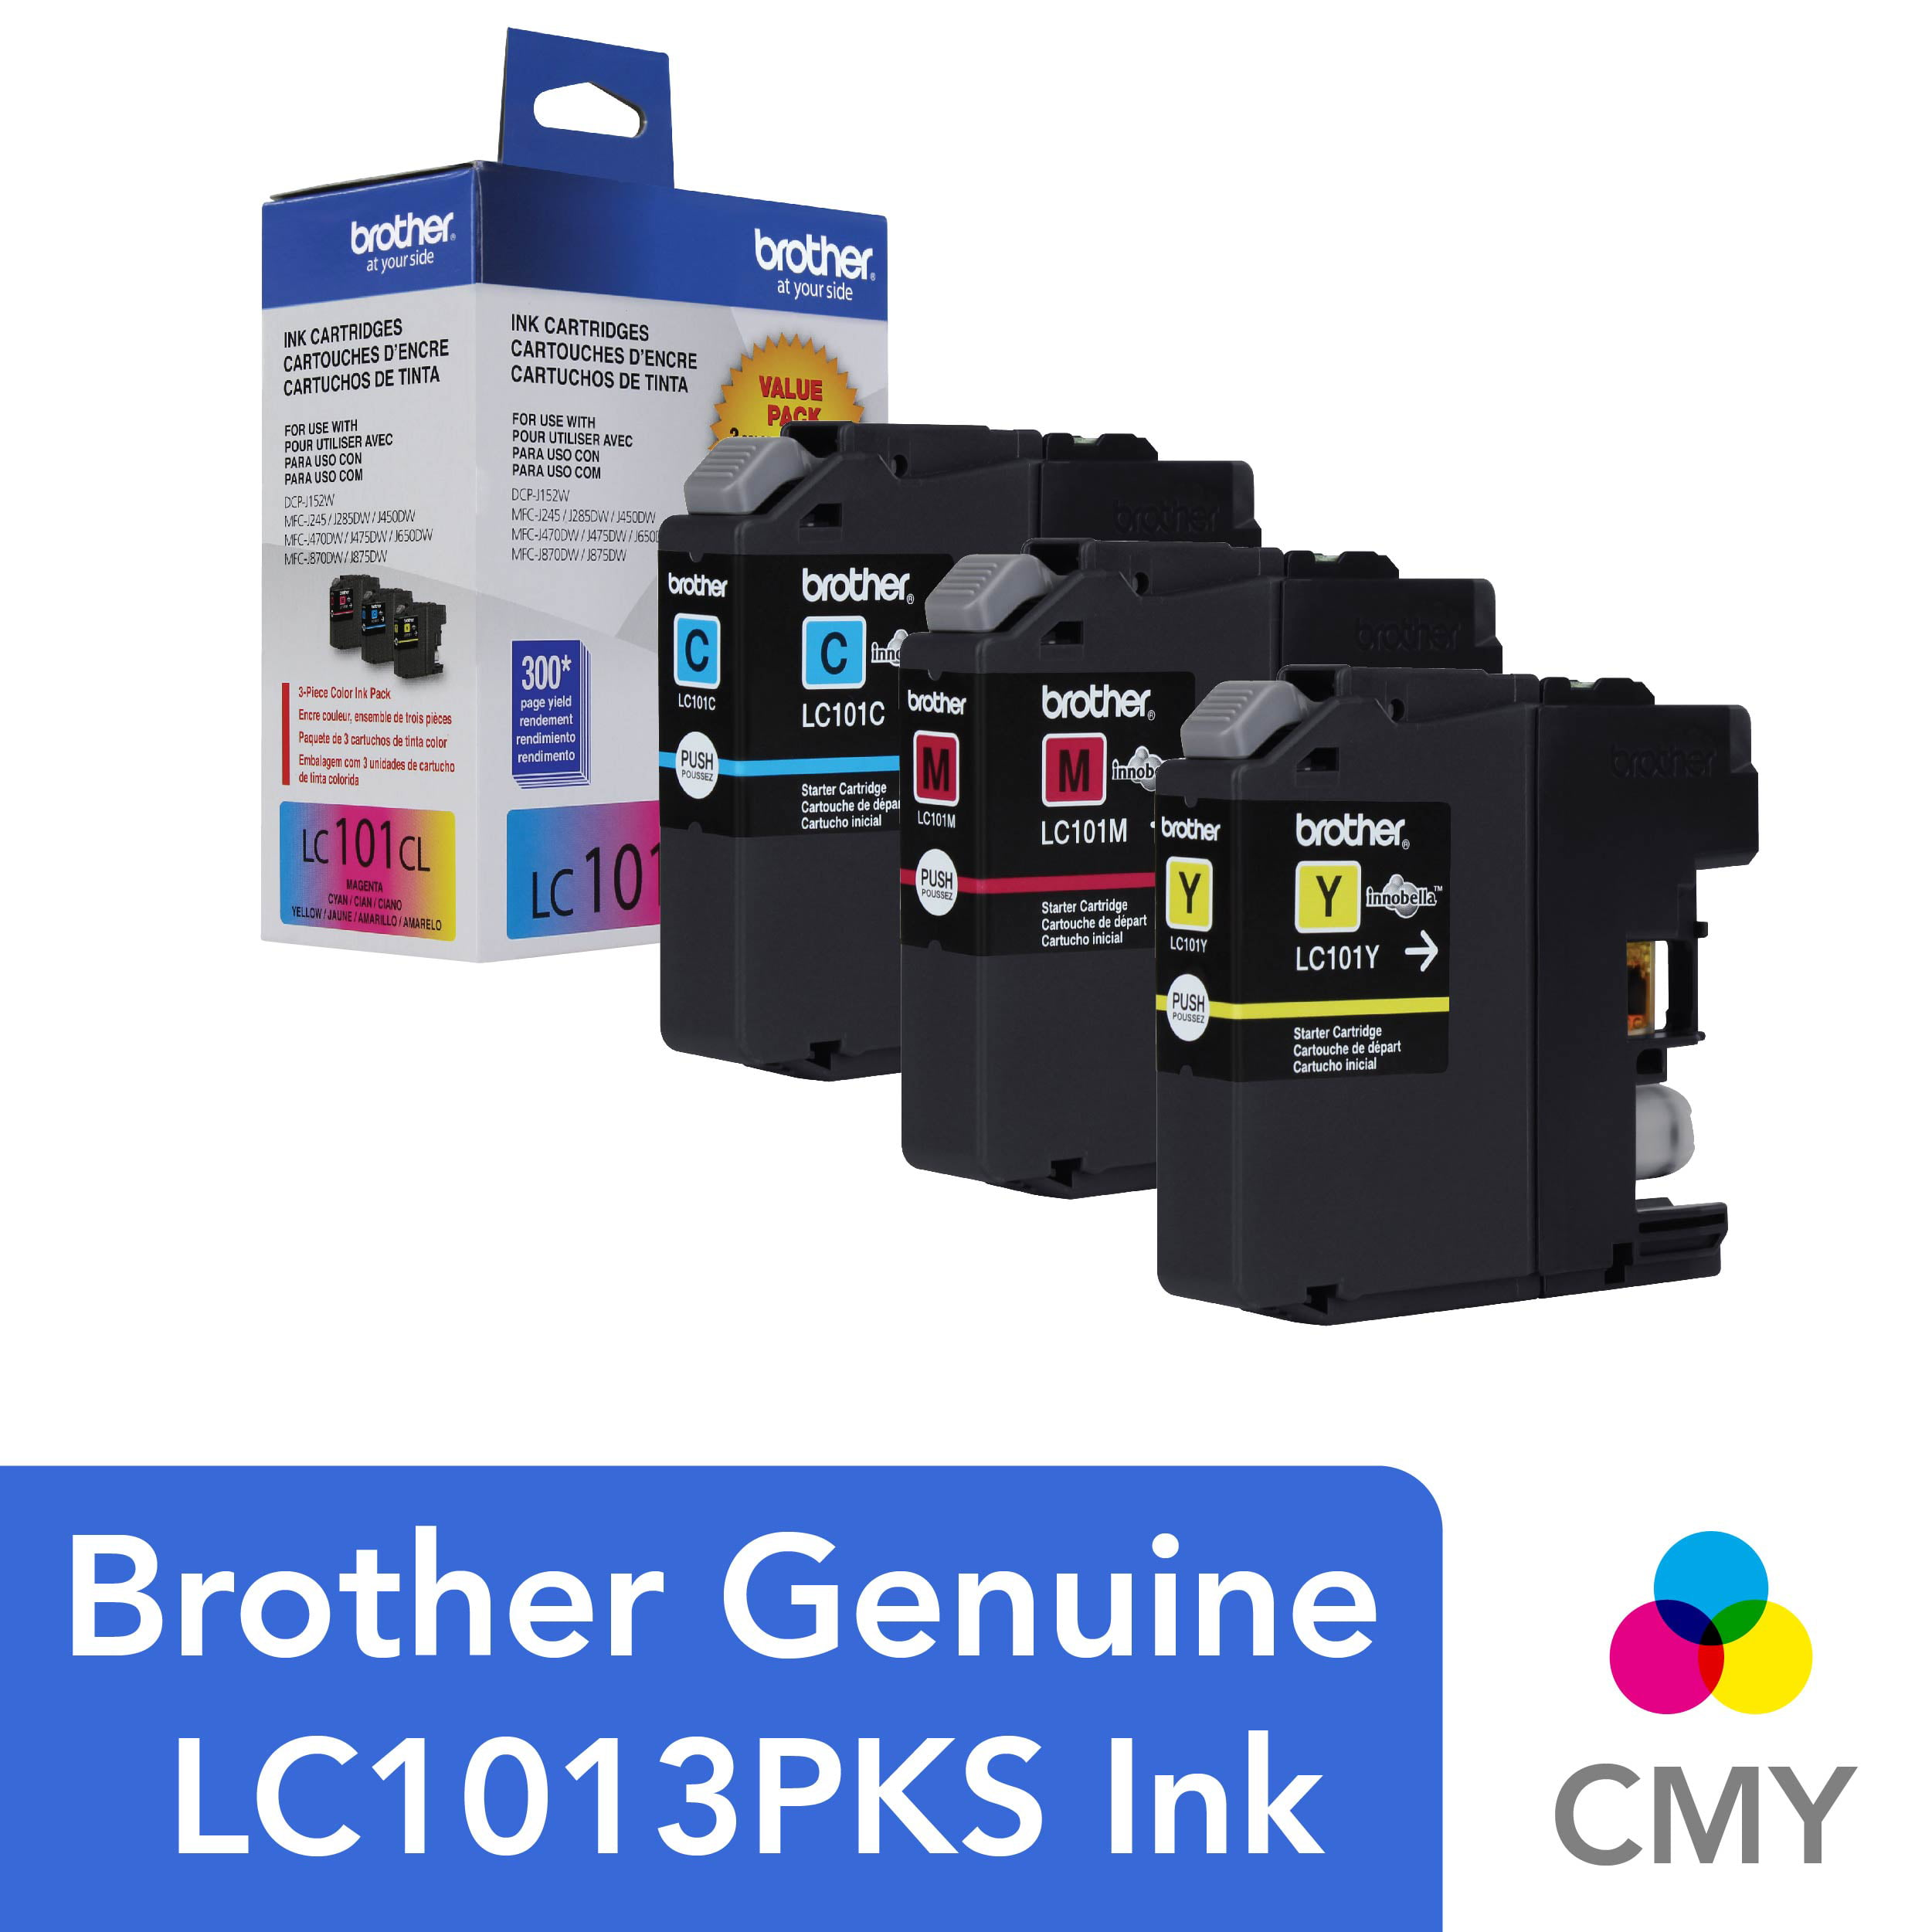 Brother Genuine Standard Yield Color Ink Cartridges, LC1013PKS, Replacement  Color Ink Three Pack, Includes 1 Cartridge Each of Cyan, Magenta & Yellow,